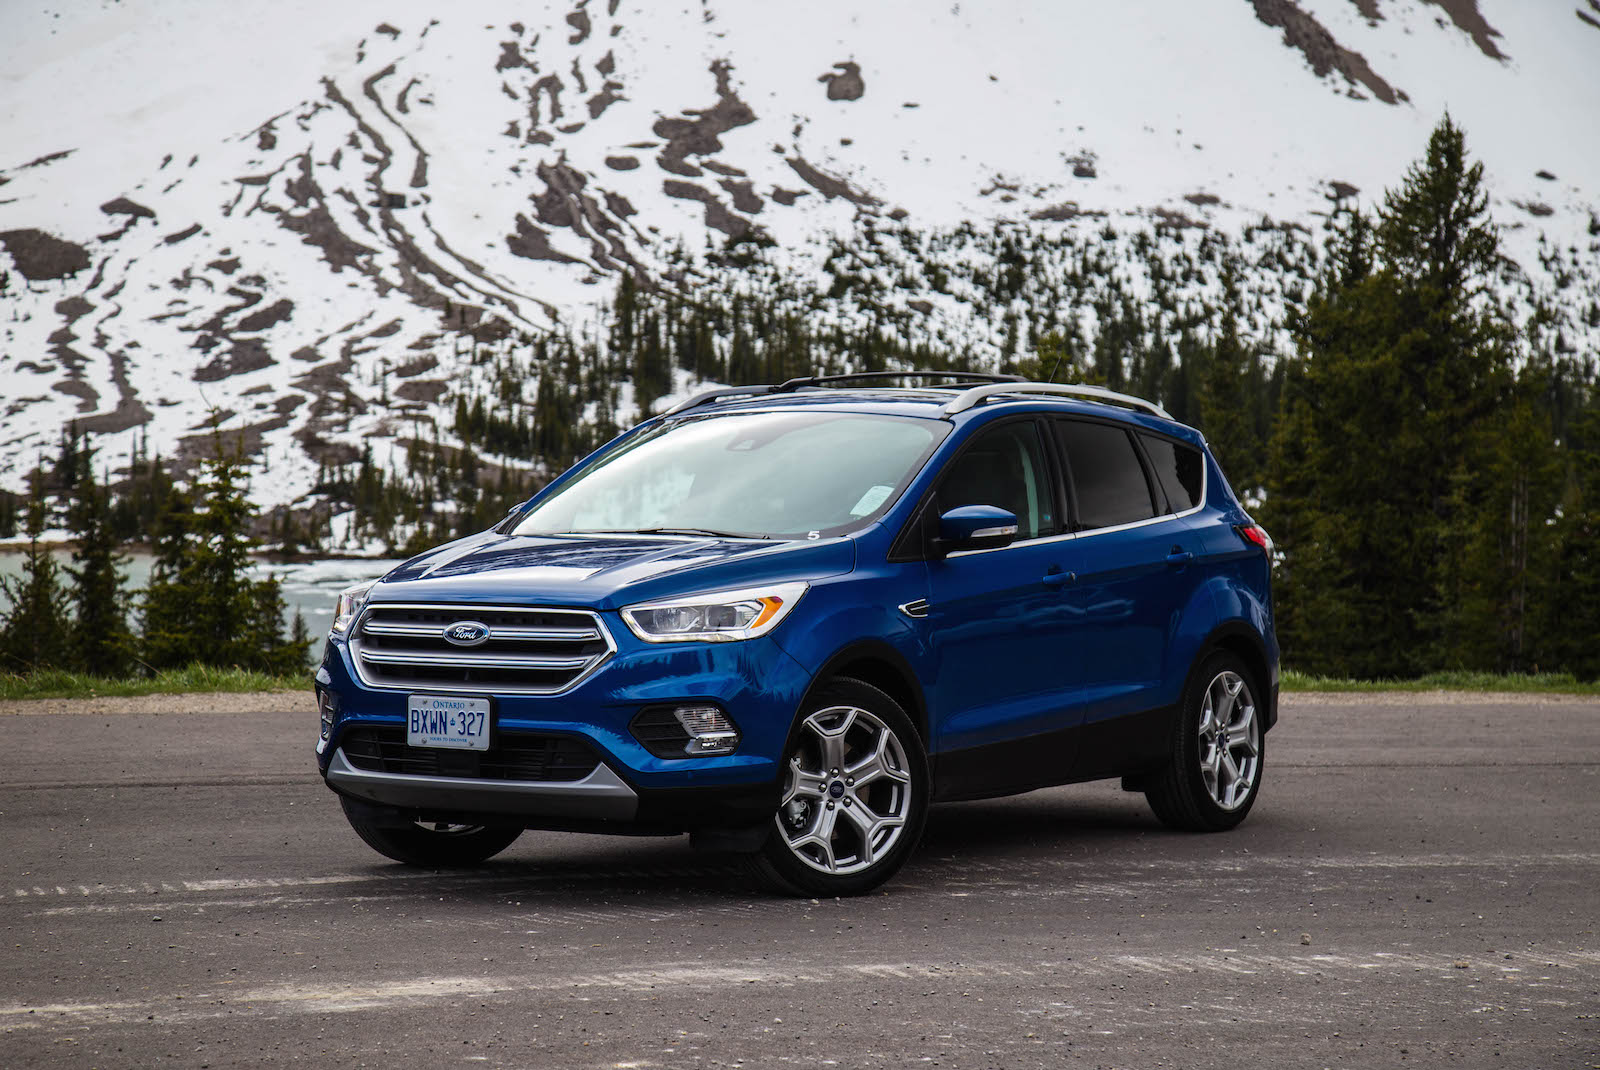 2017 ford escape lightning blue colour 2017 ford escape blue